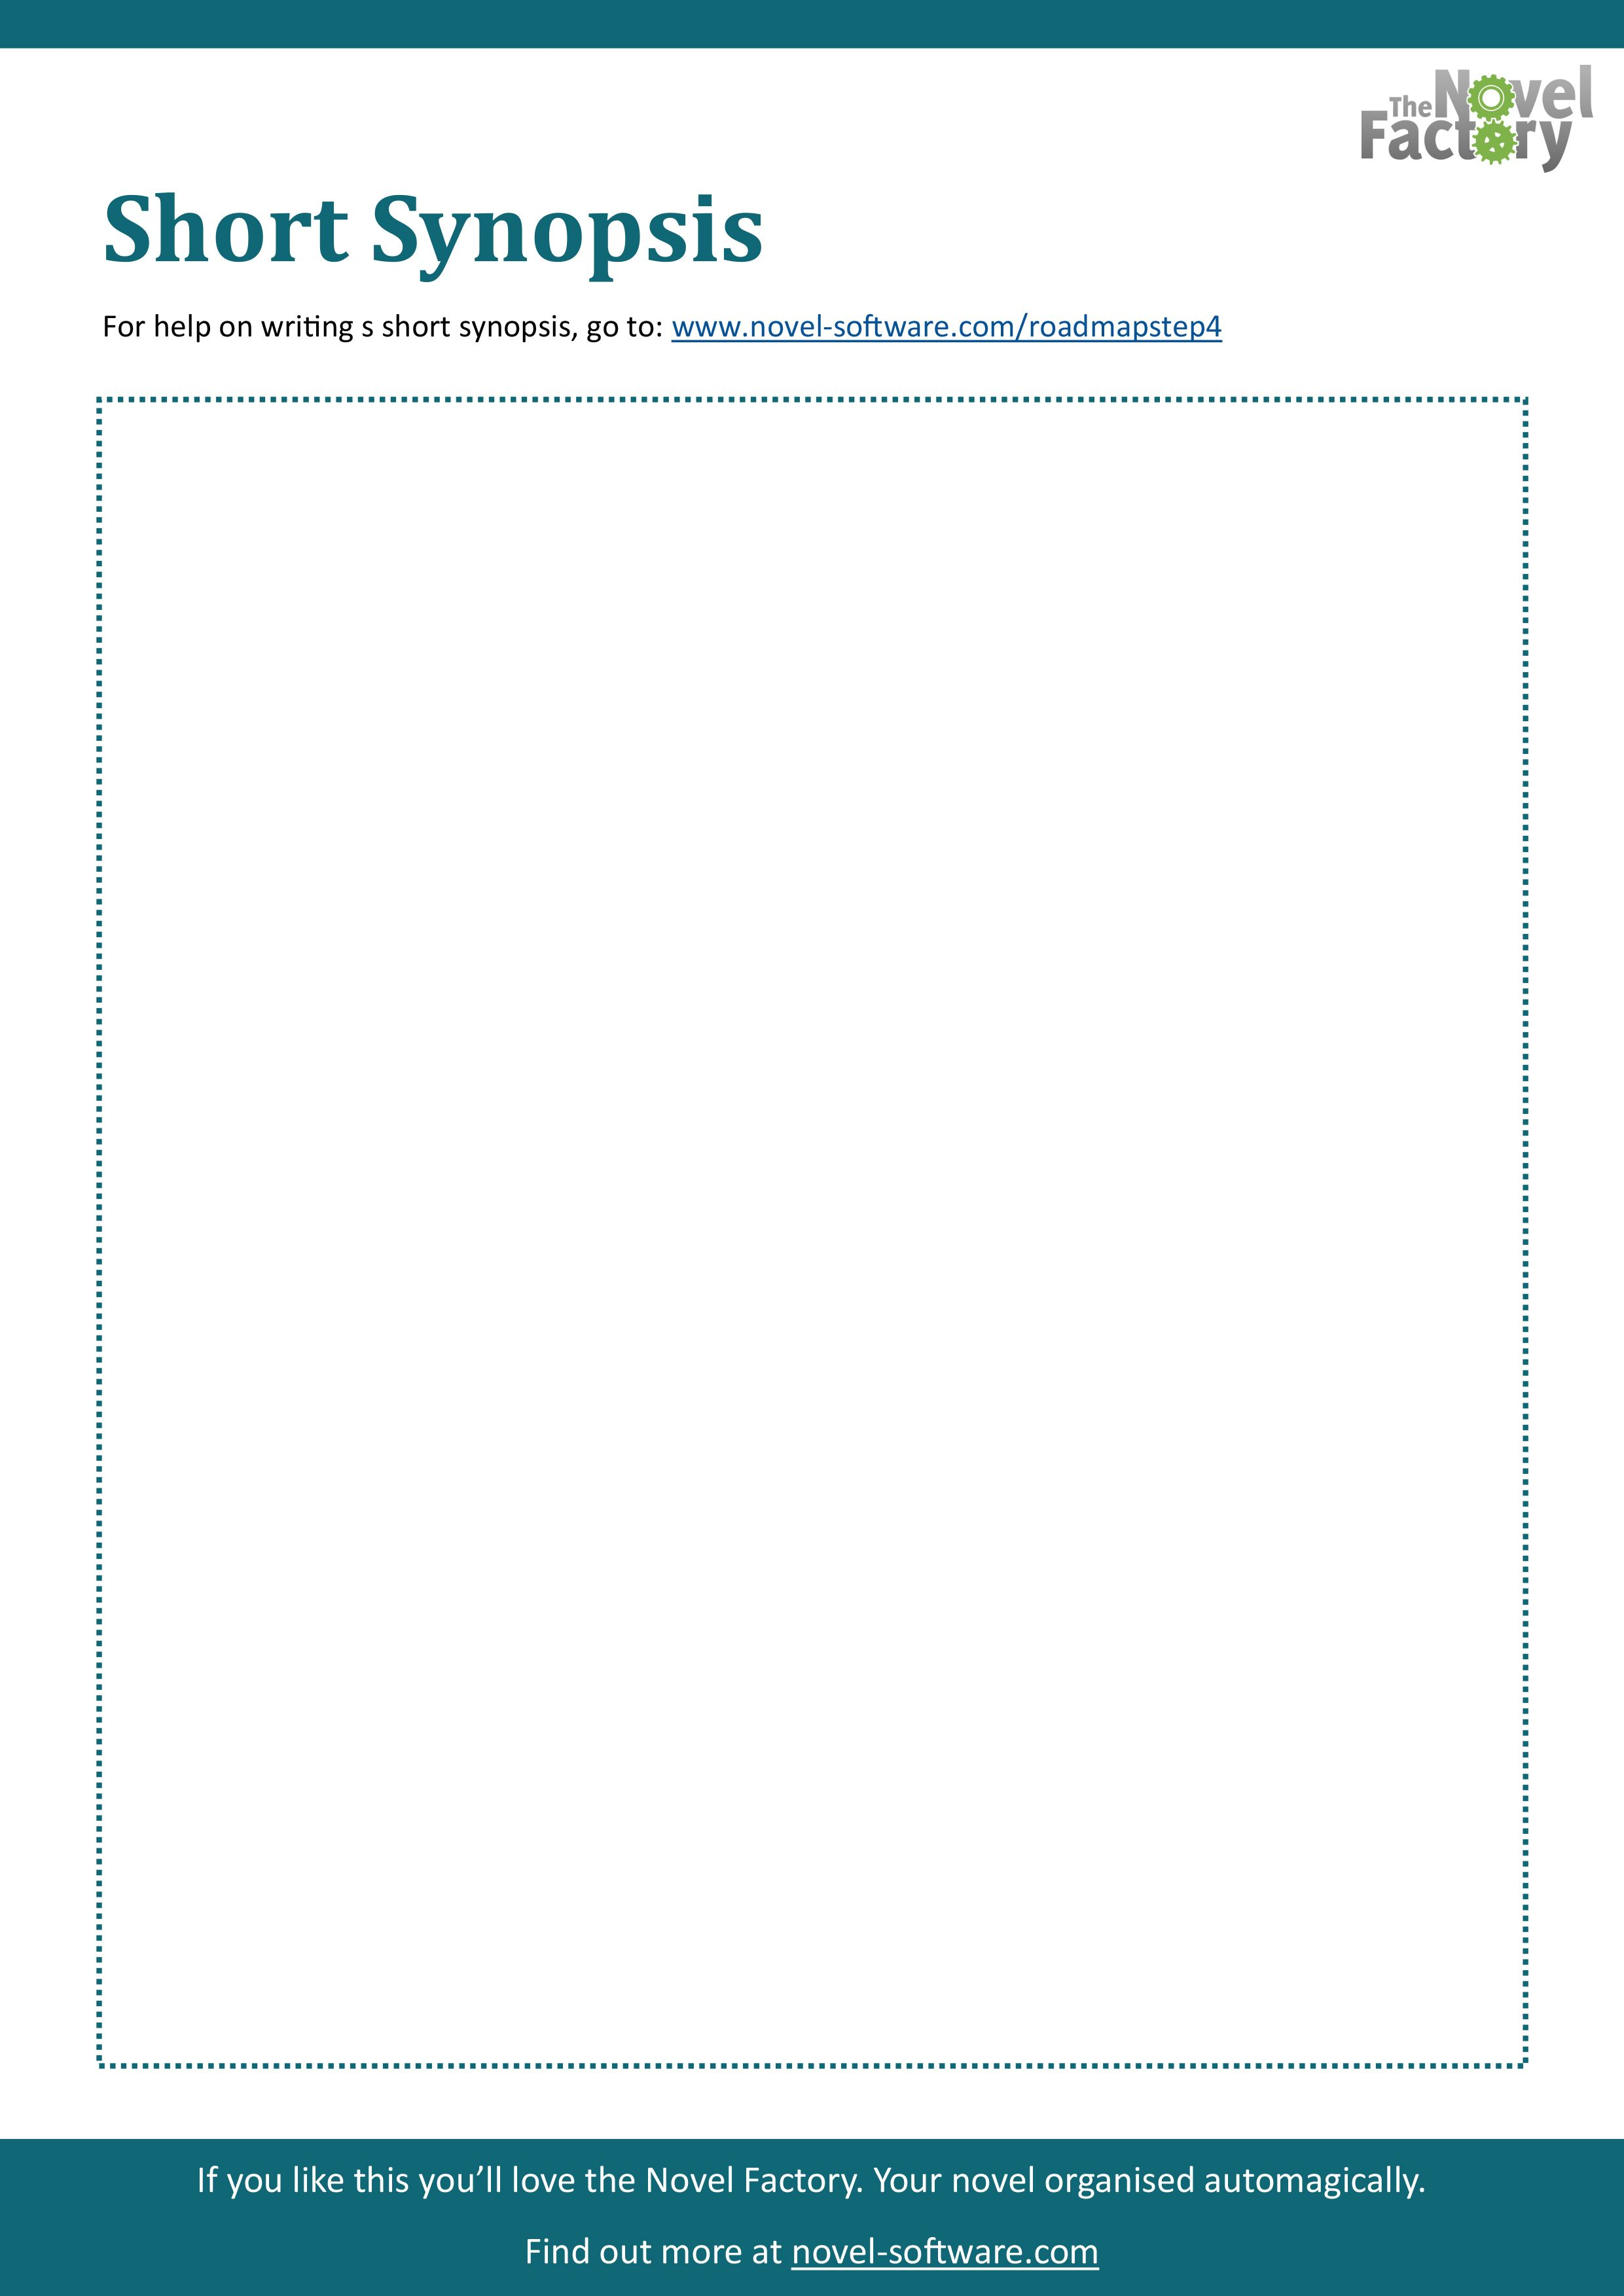 Short Synopsis Worksheet A Free Downloadable Printable